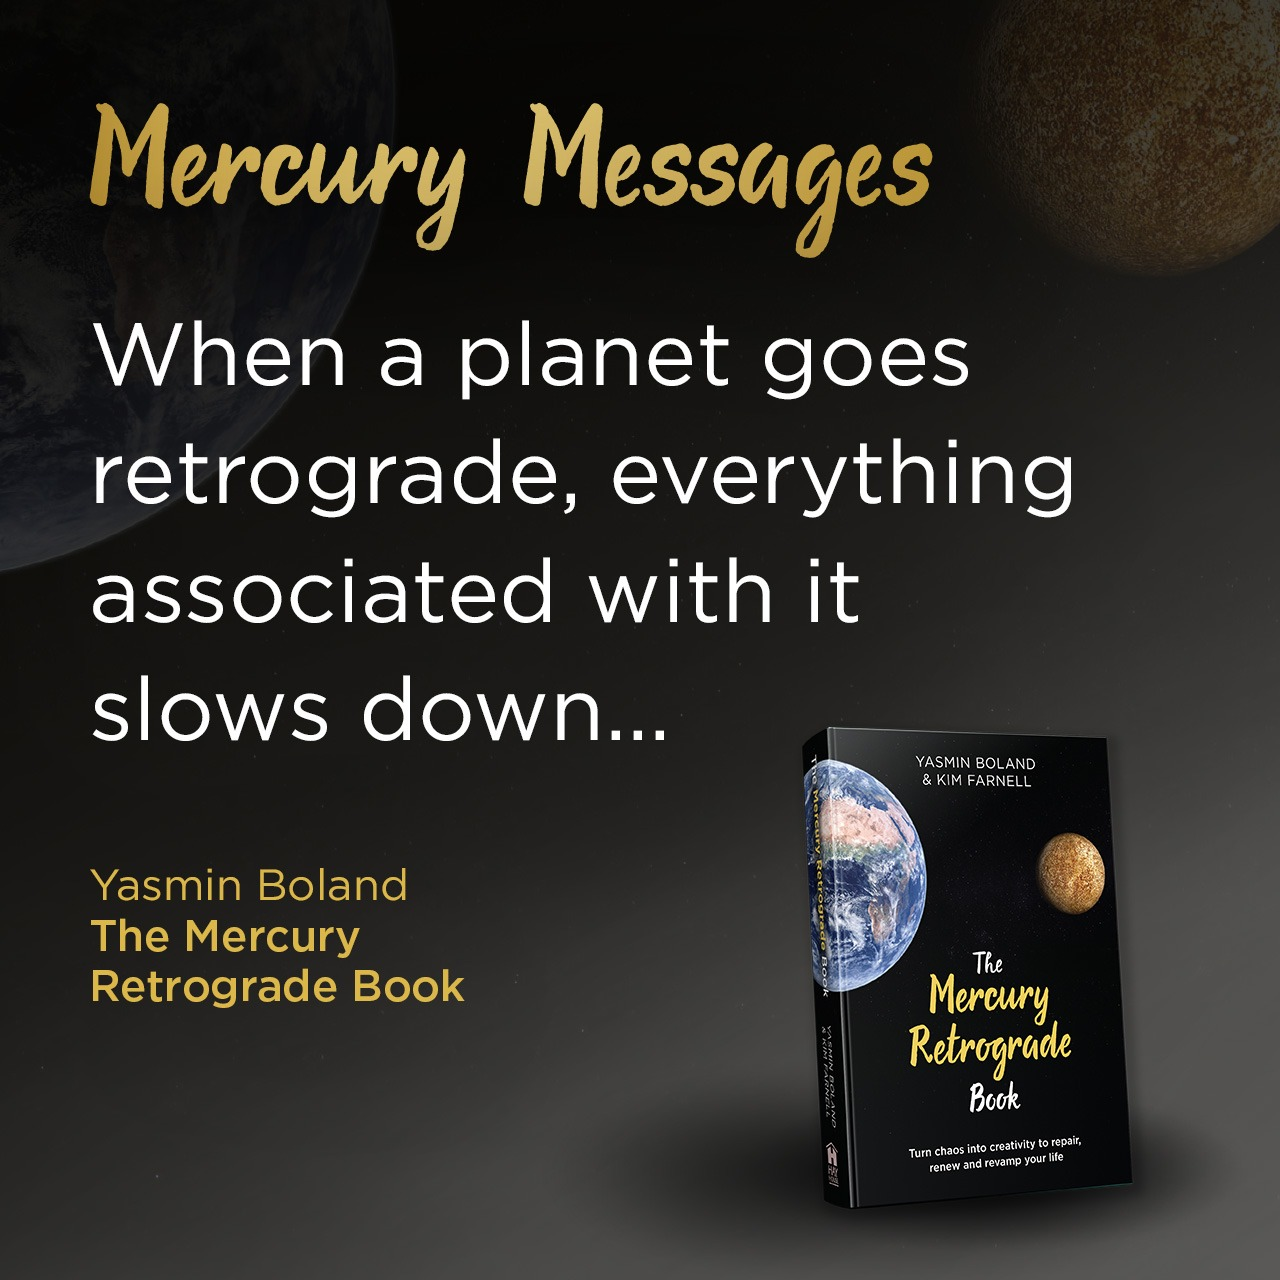 Top 3 ways to prepare for Mercury retrograde…